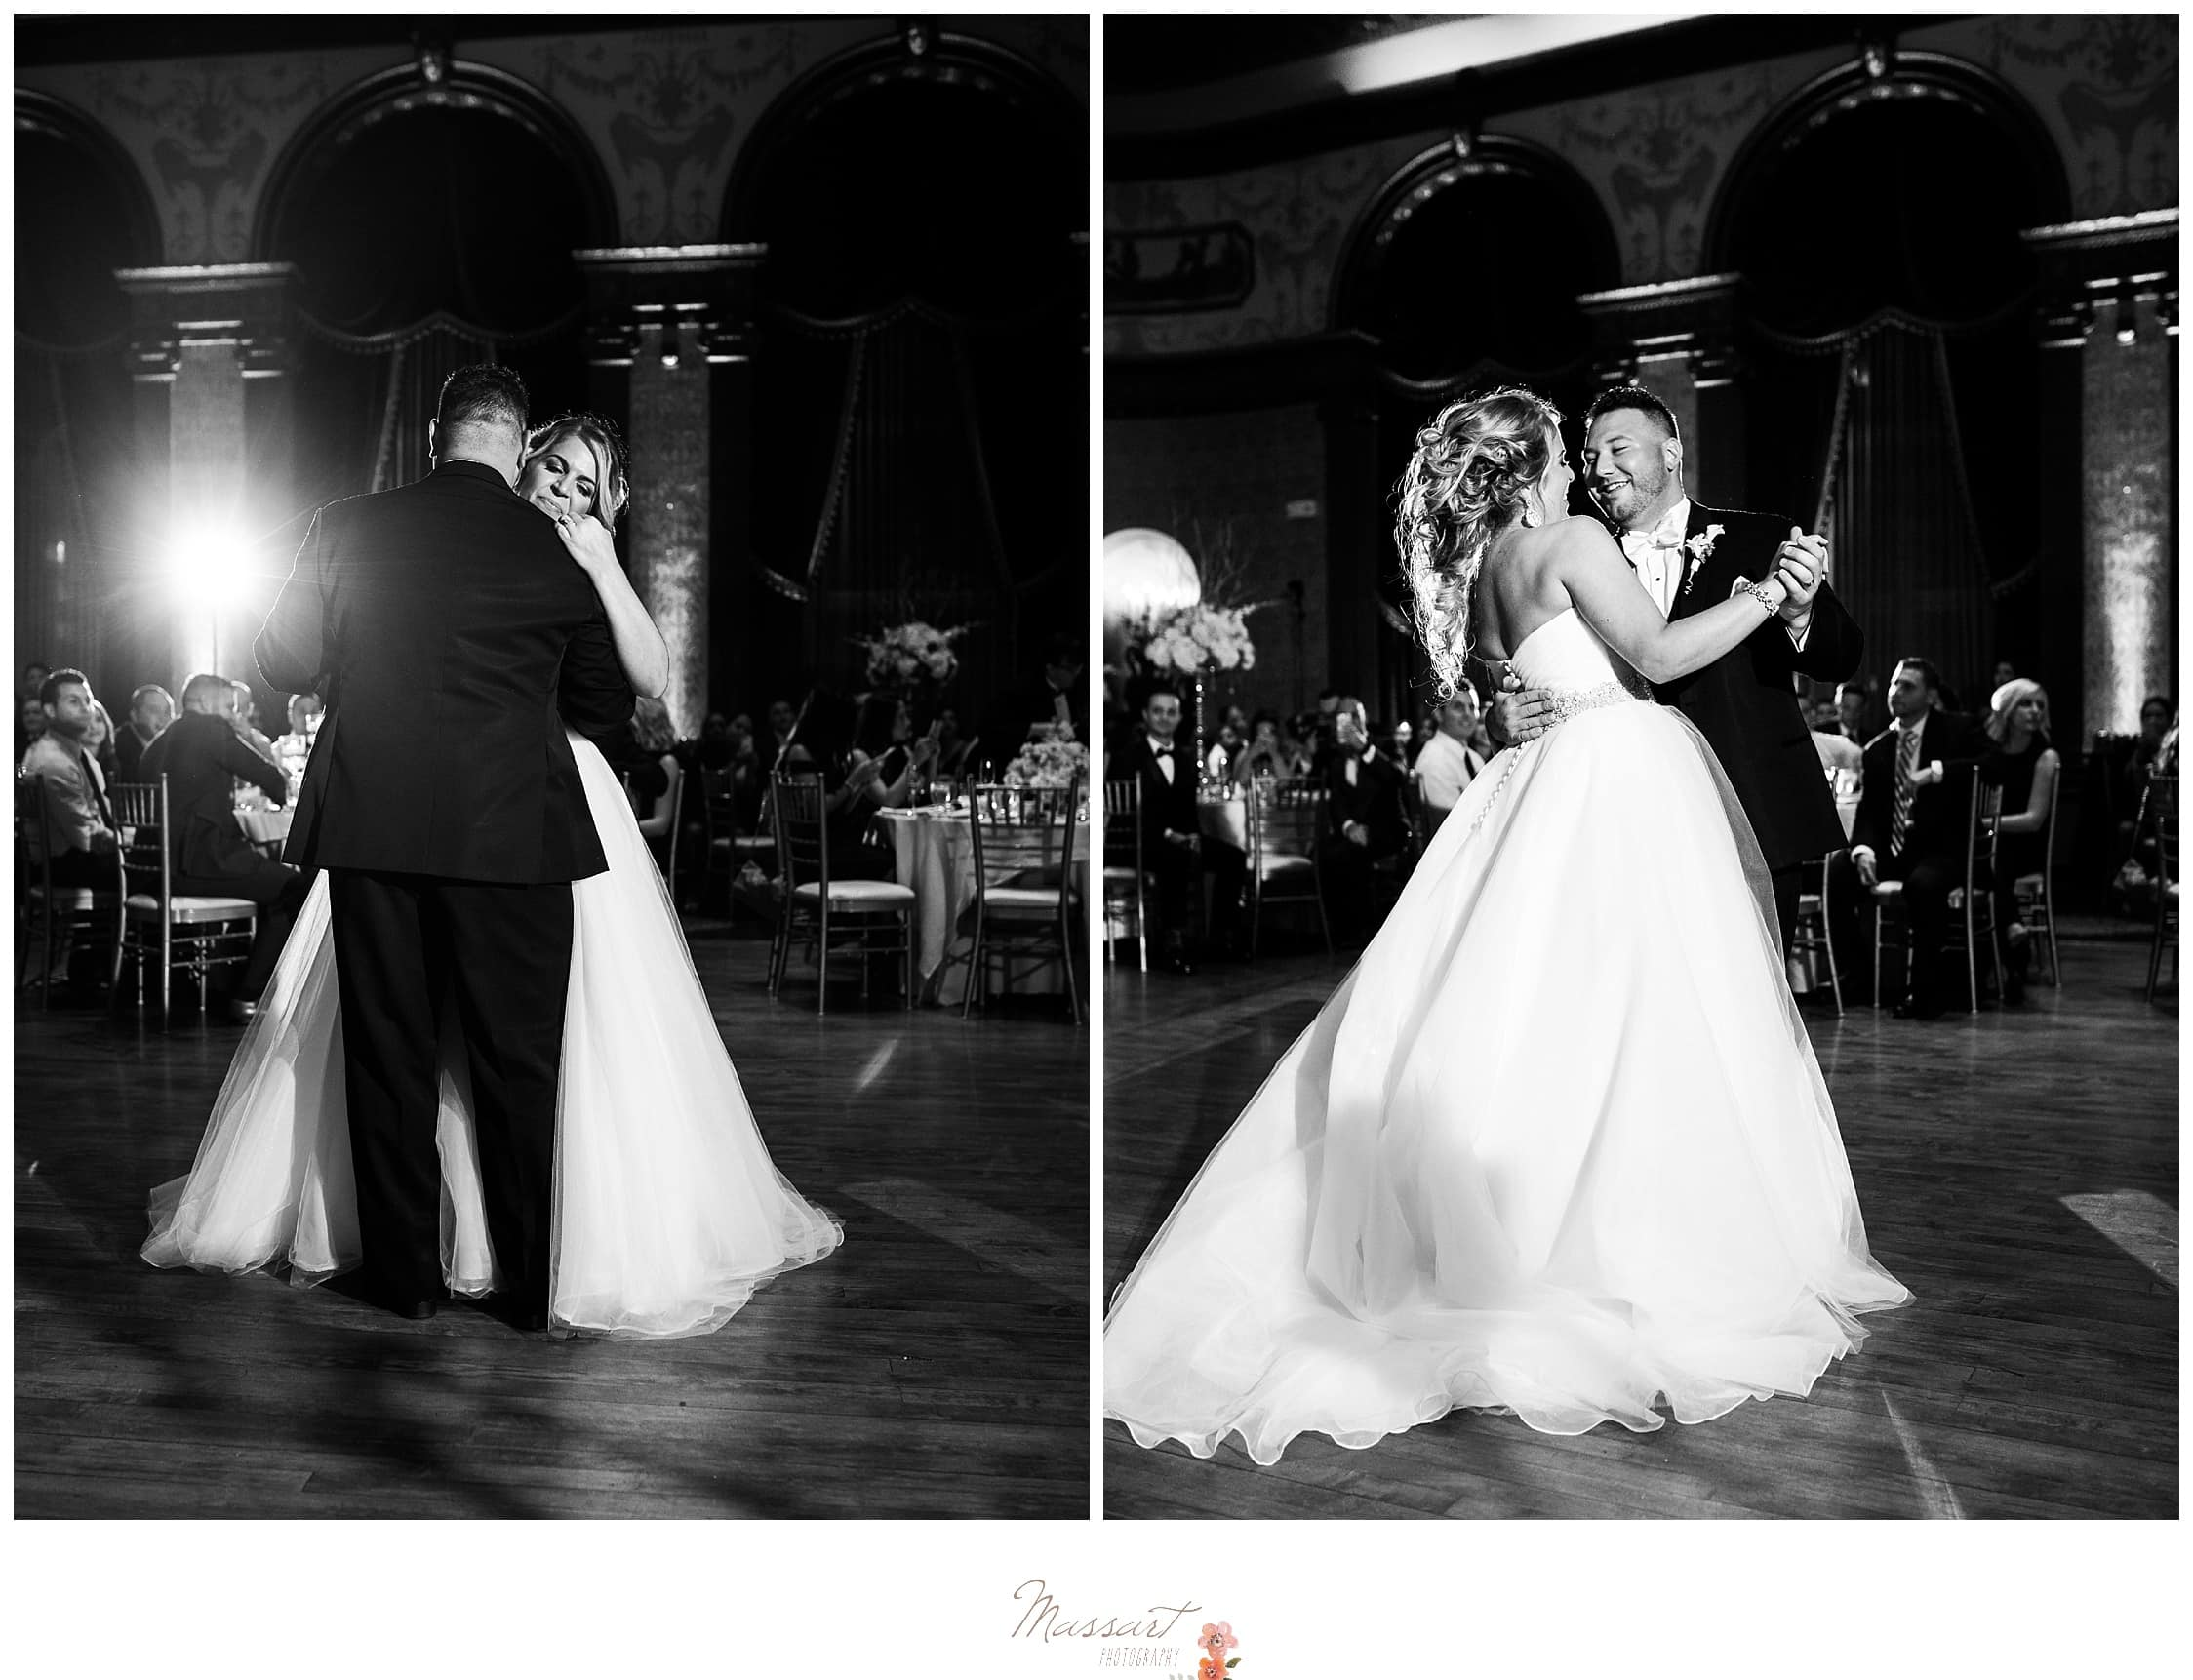 Black and white portraits of the bride and groom's first dance at the Biltmore photographed by Massart Photography RI